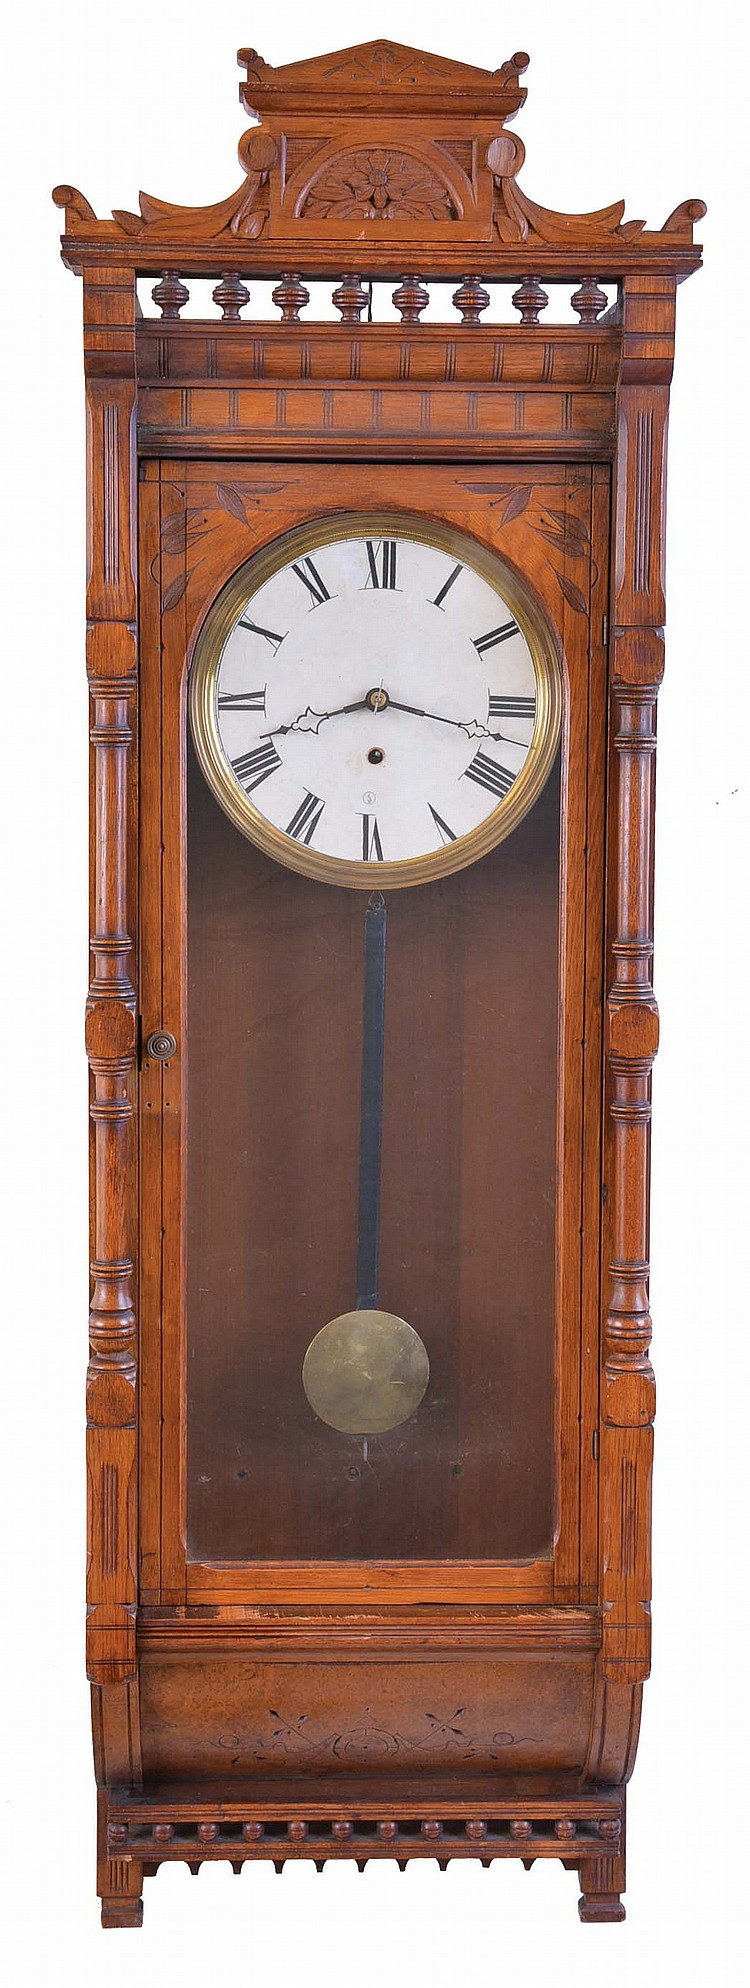 George B. Owen, Winsted, Conn., wall clock, 8 day, time only, spring driven movement in a walnut case with arcaded top and papered metal dial